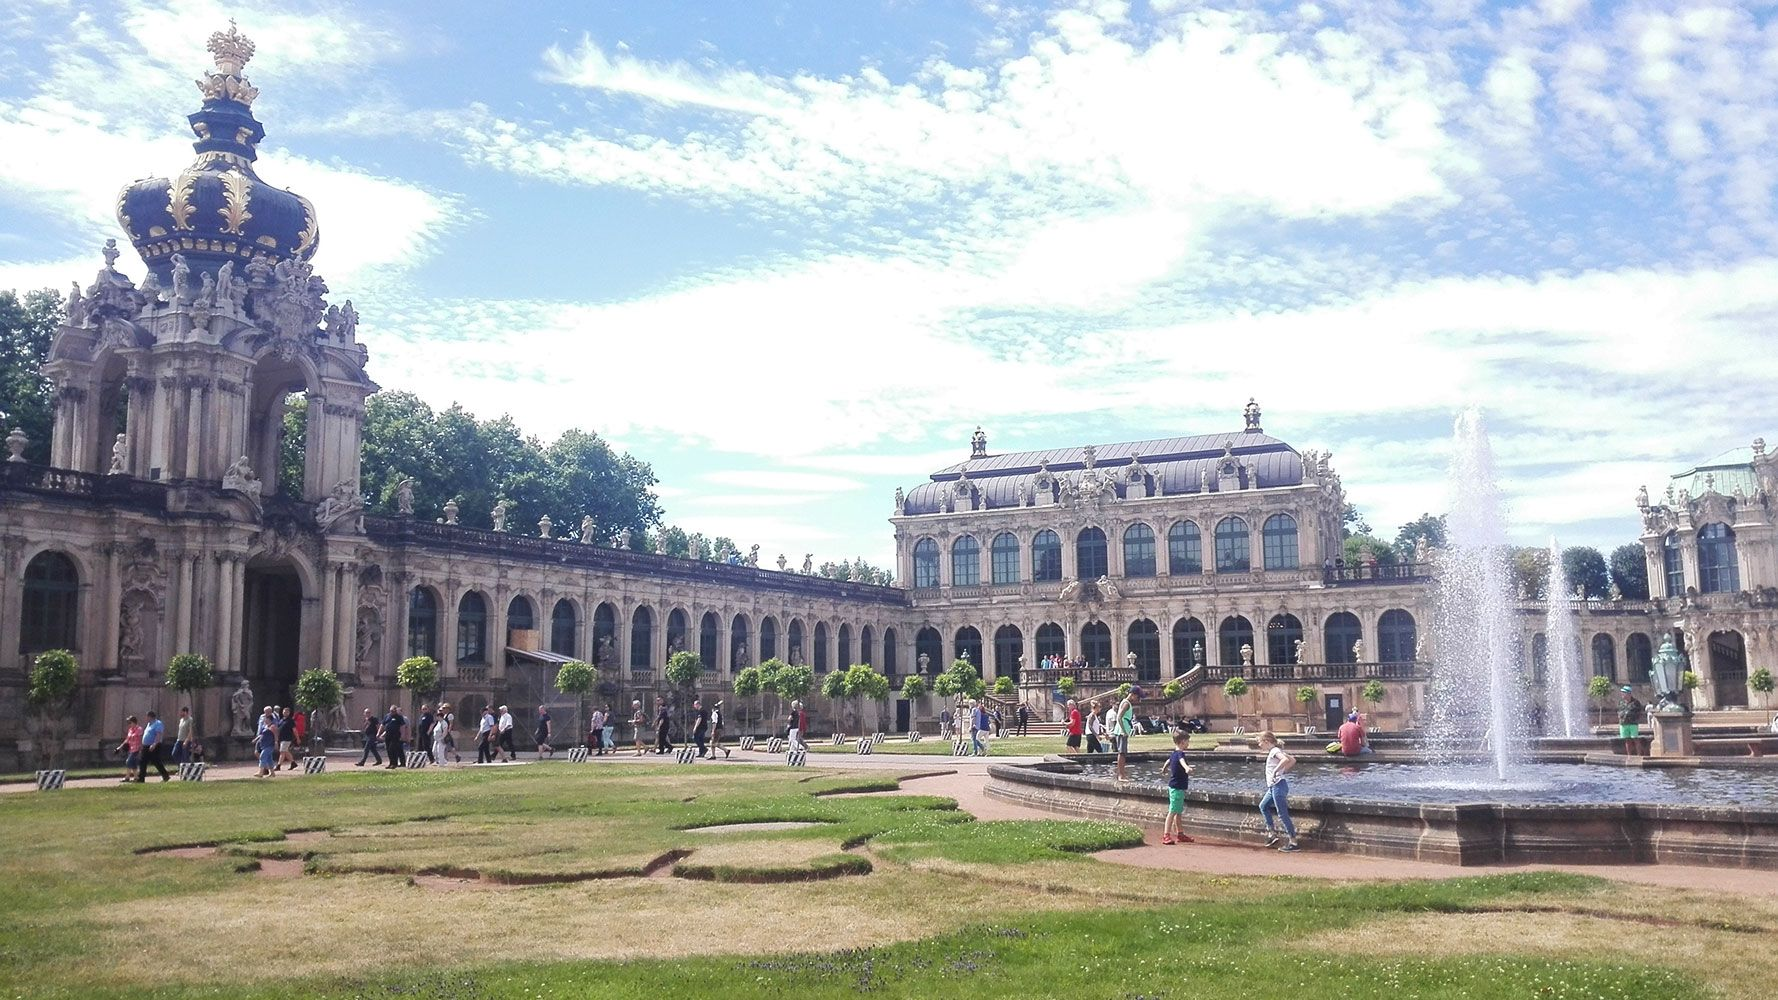 Zwinger - royal palace, today gallery